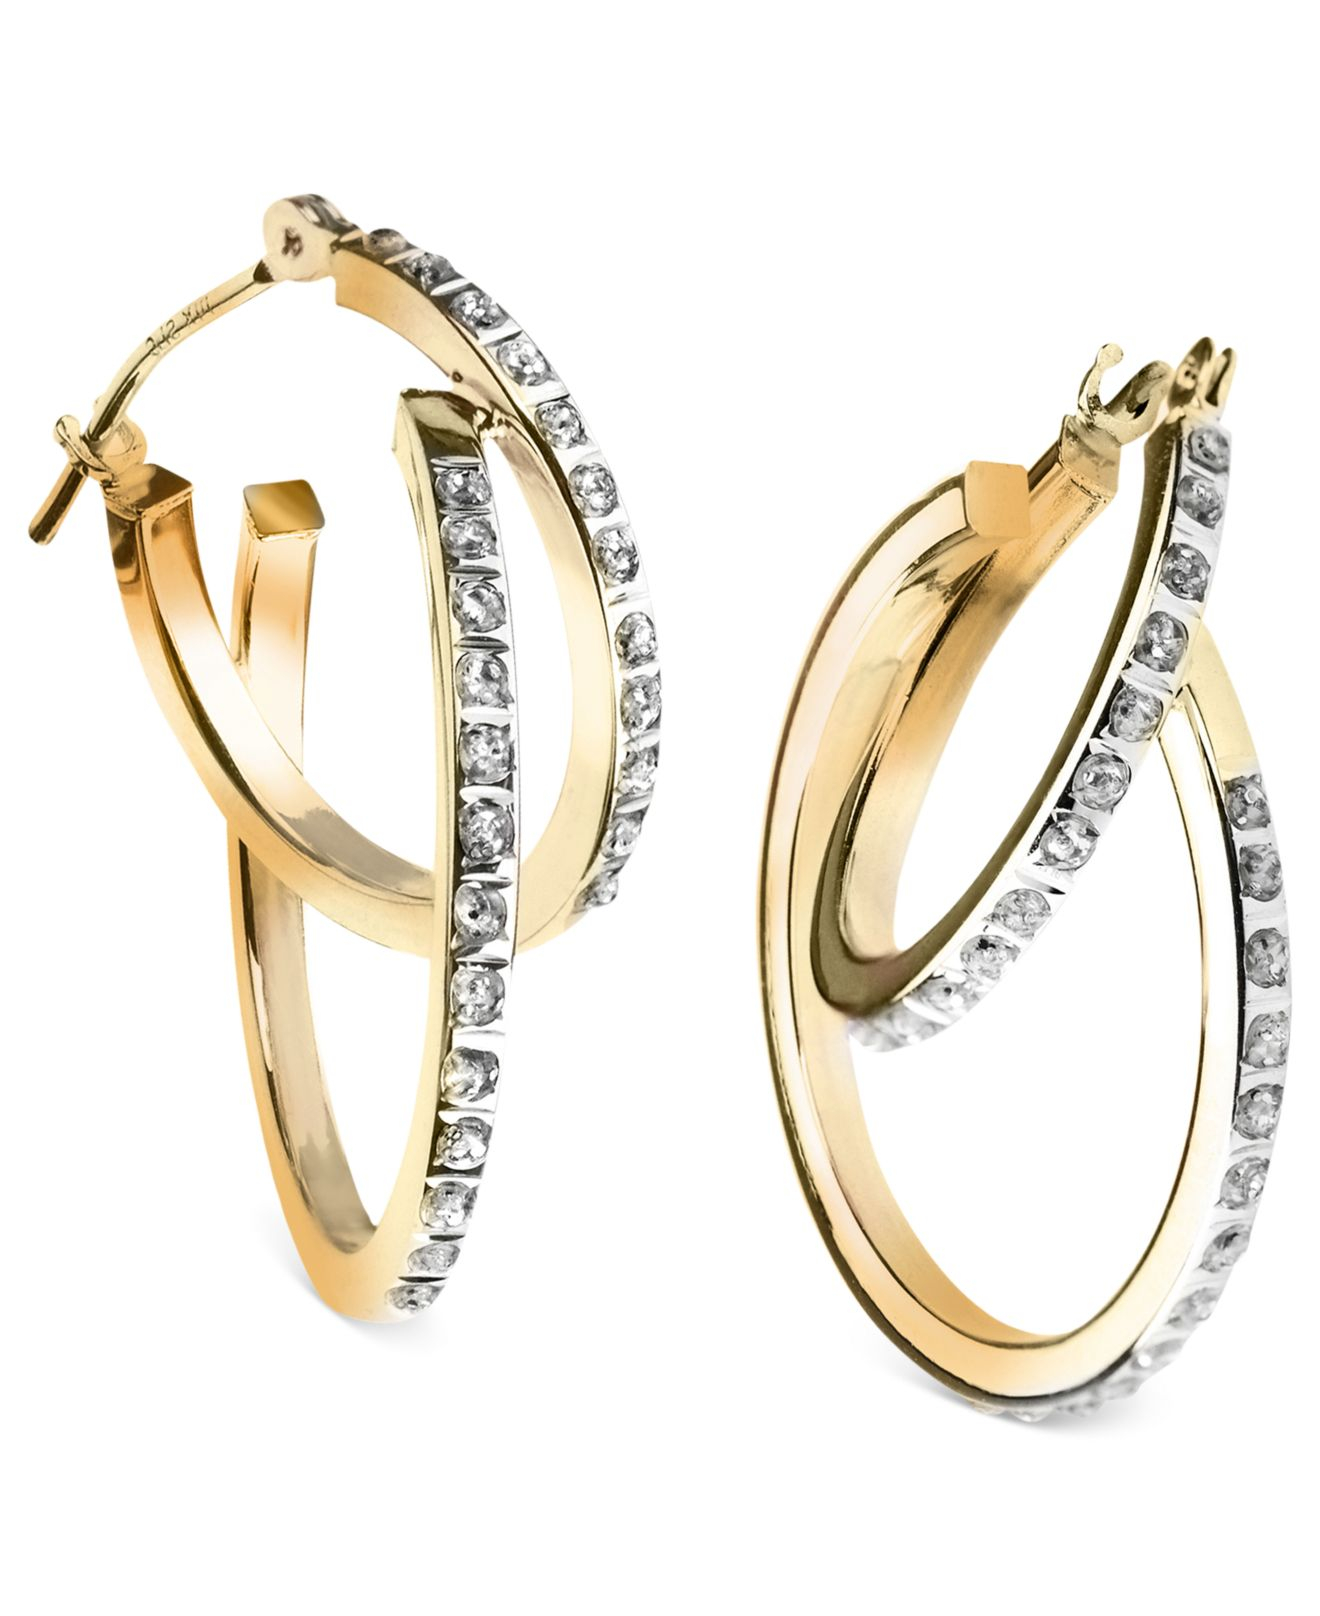 lyst macy 39 s 14k yellow or white gold earrings diamond. Black Bedroom Furniture Sets. Home Design Ideas